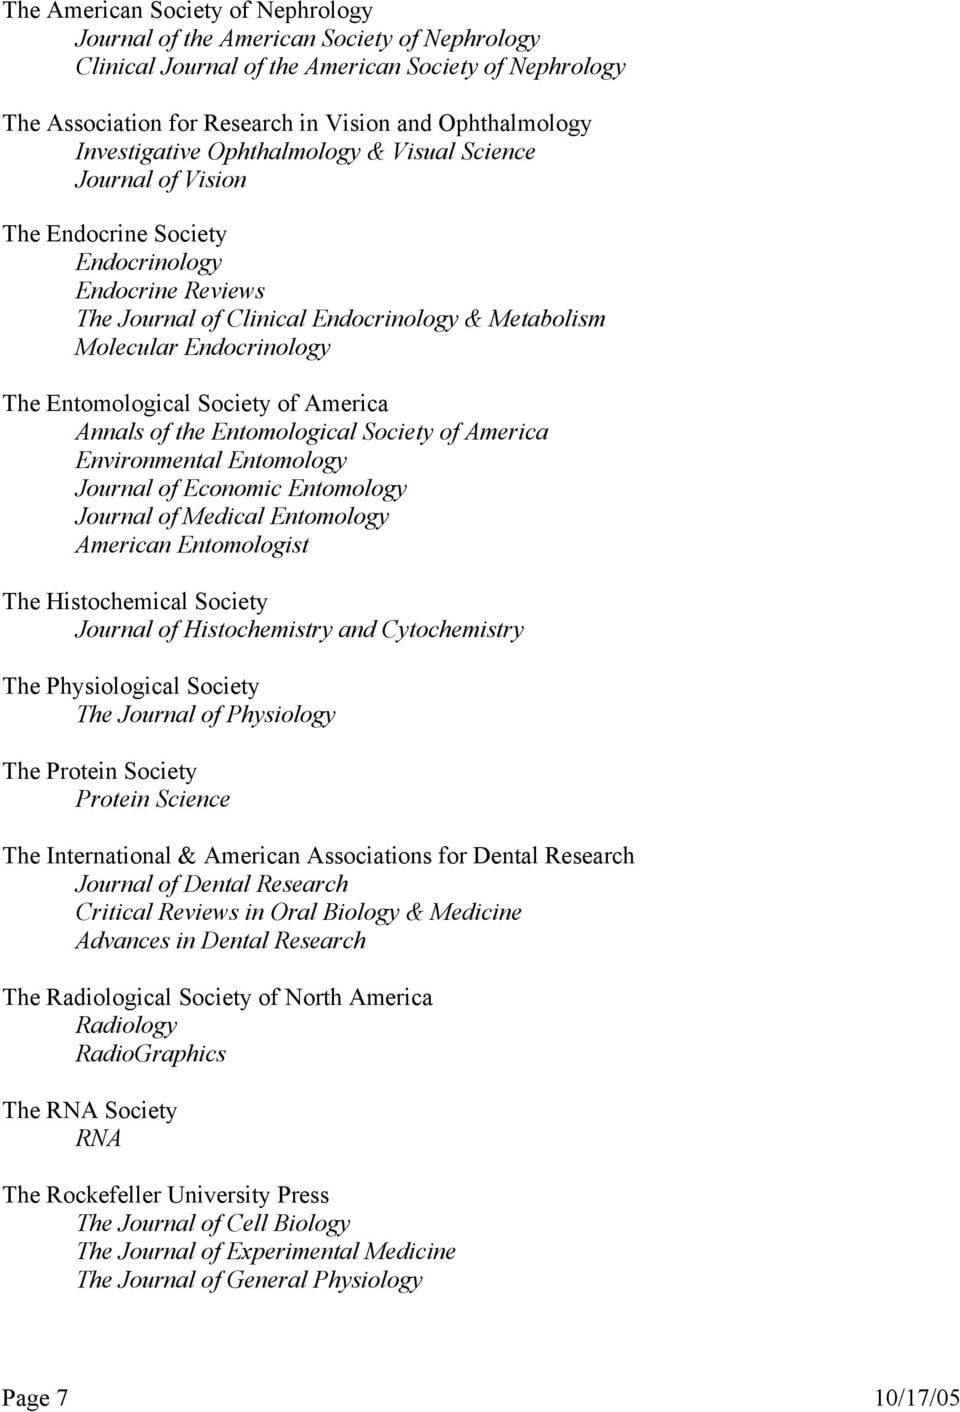 Entomological Society of America Annals of the Entomological Society of America Environmental Entomology Journal of Economic Entomology Journal of Medical Entomology American Entomologist The